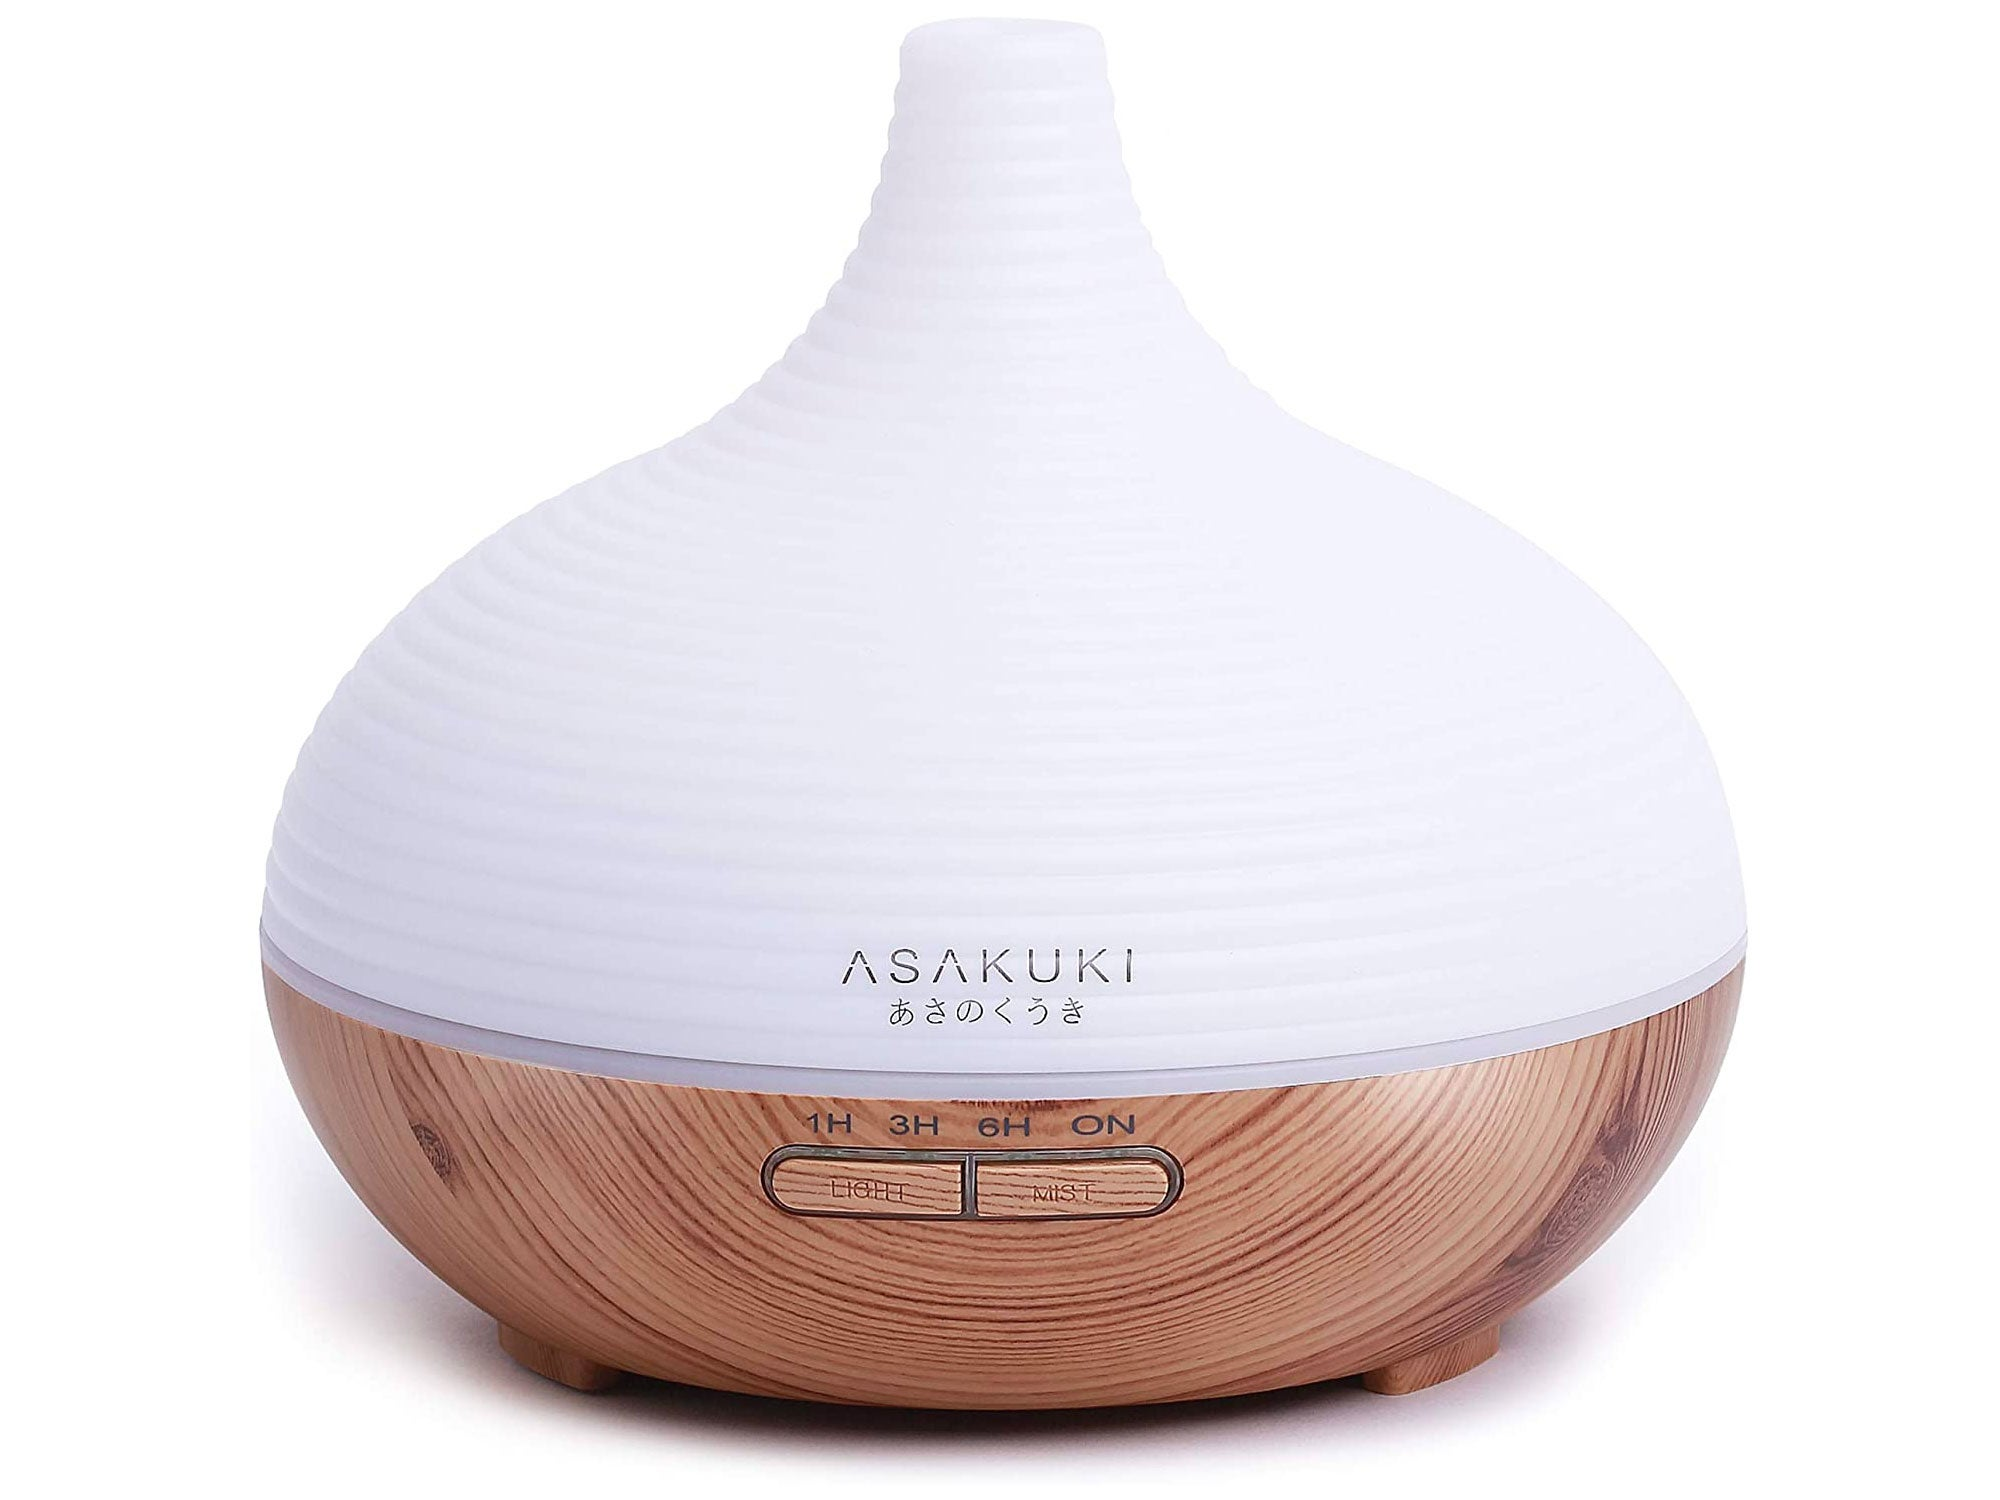 ASAKUKI 300ml Essential Oil Diffuser, Premium 5 In 1 Ultrasonic Aromatherapy Scented Oil Diffuser Vaporizer Humidifier, Timer and Waterless Auto-Off, 7 LED Light Colors